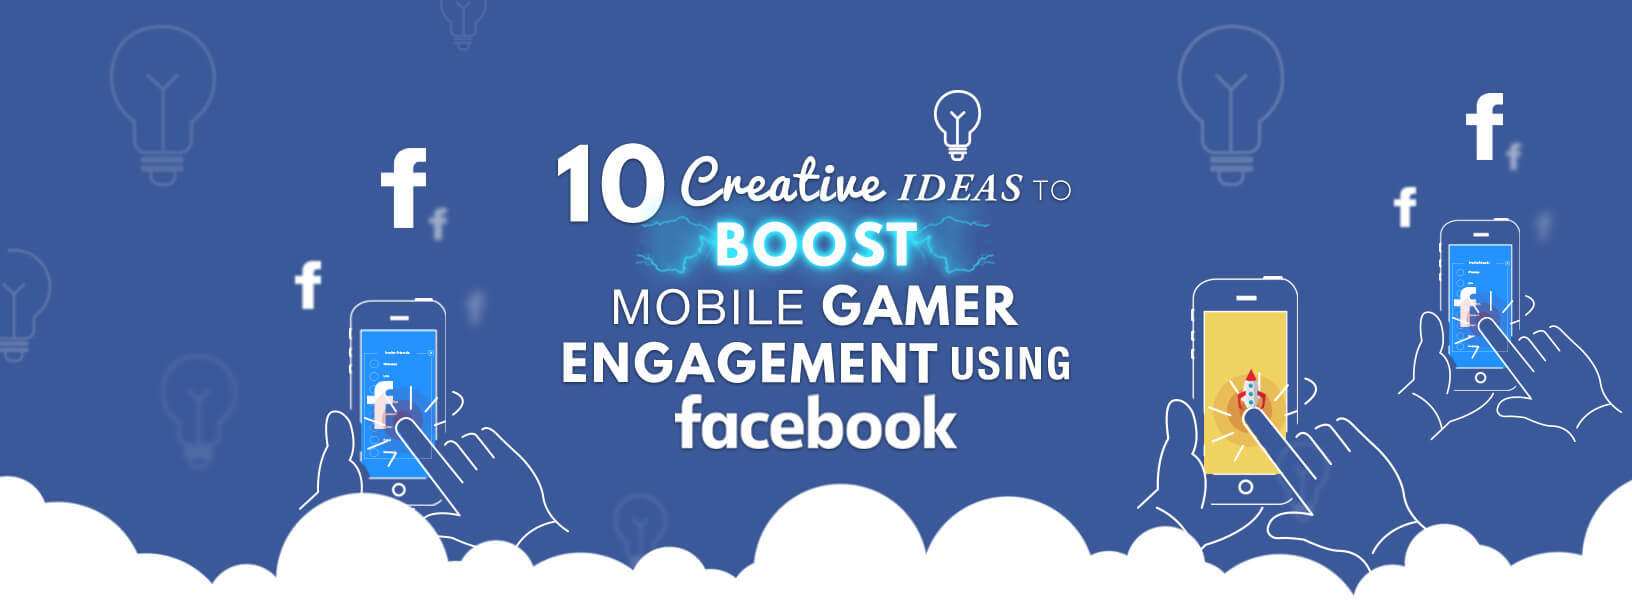 10 Creative Ideas To Boost Mobile Gamer Engagement Using Facebook